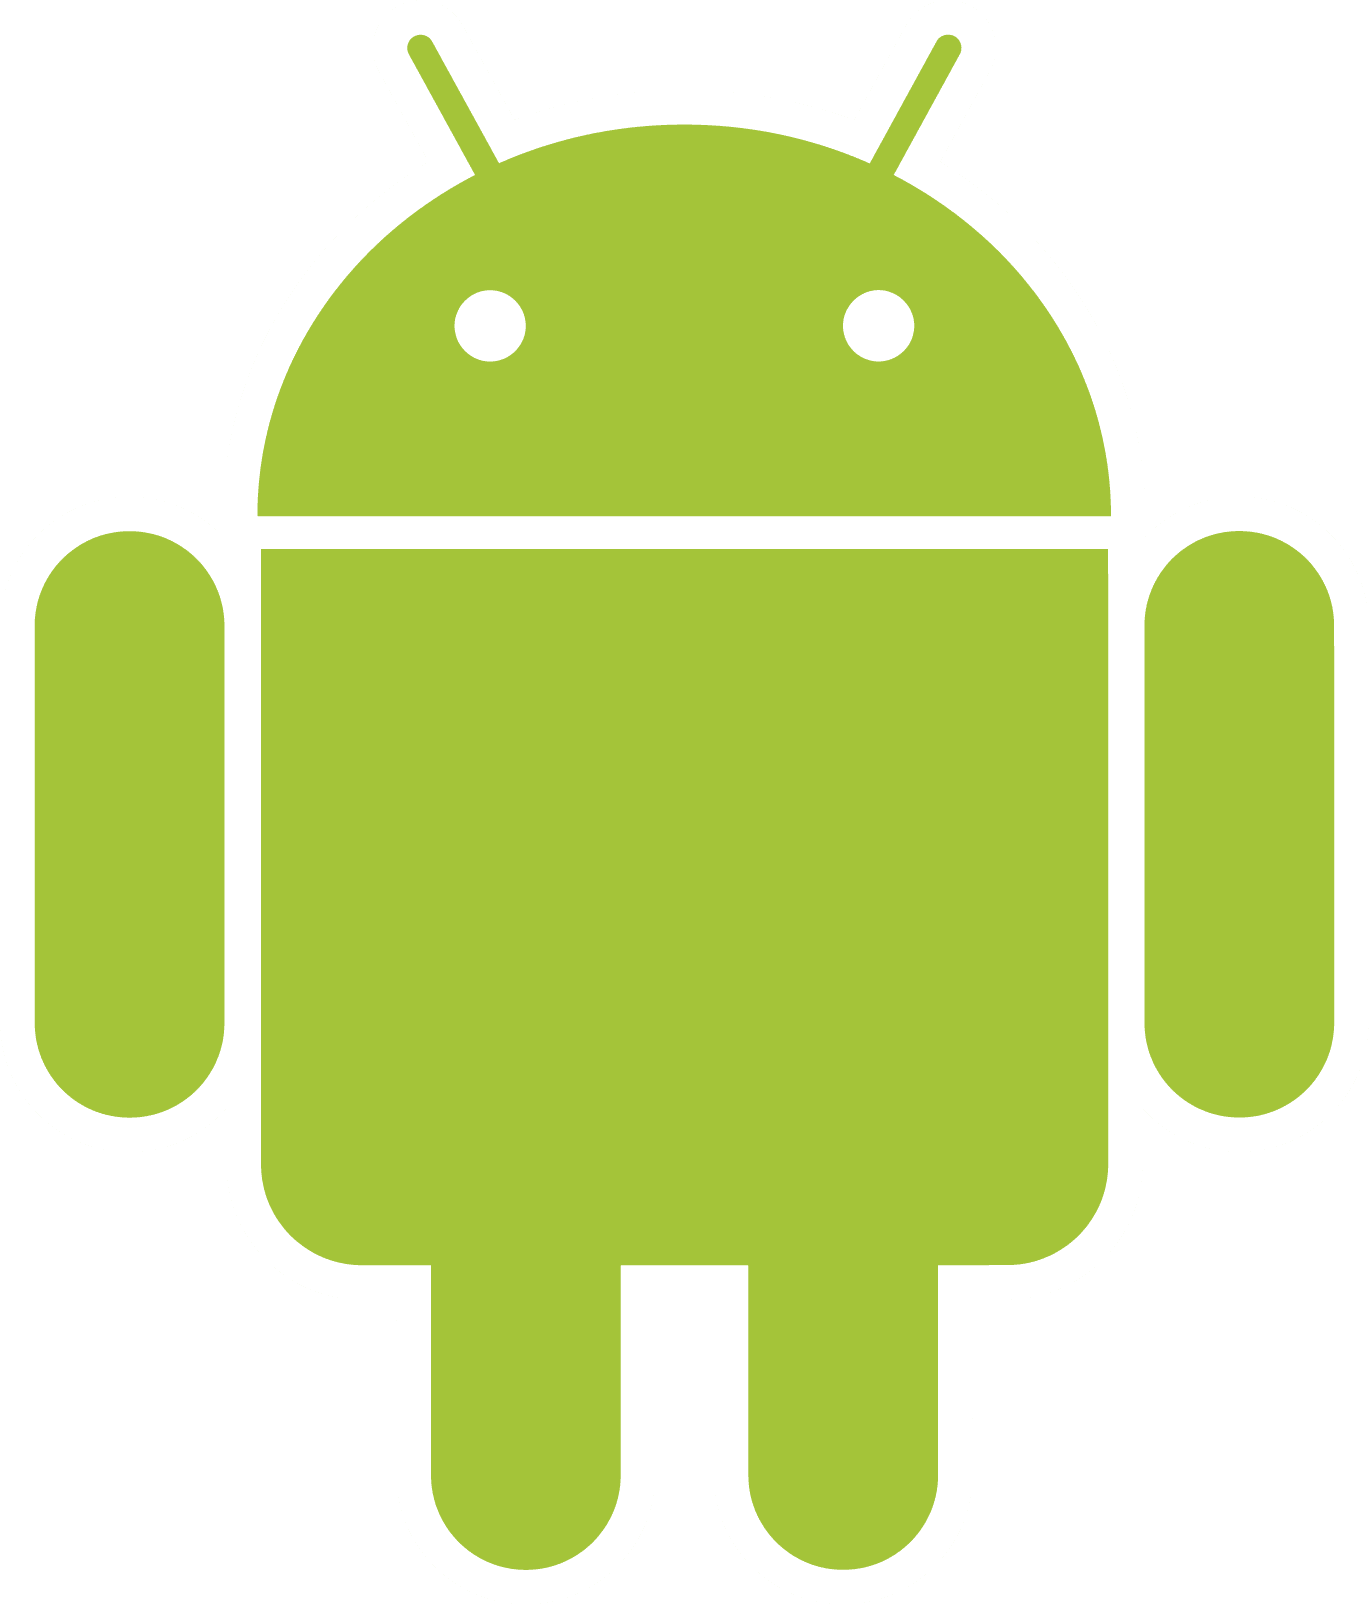 Android Logo Vector EPS Free Download, Logo, Icons, Brand Emblems